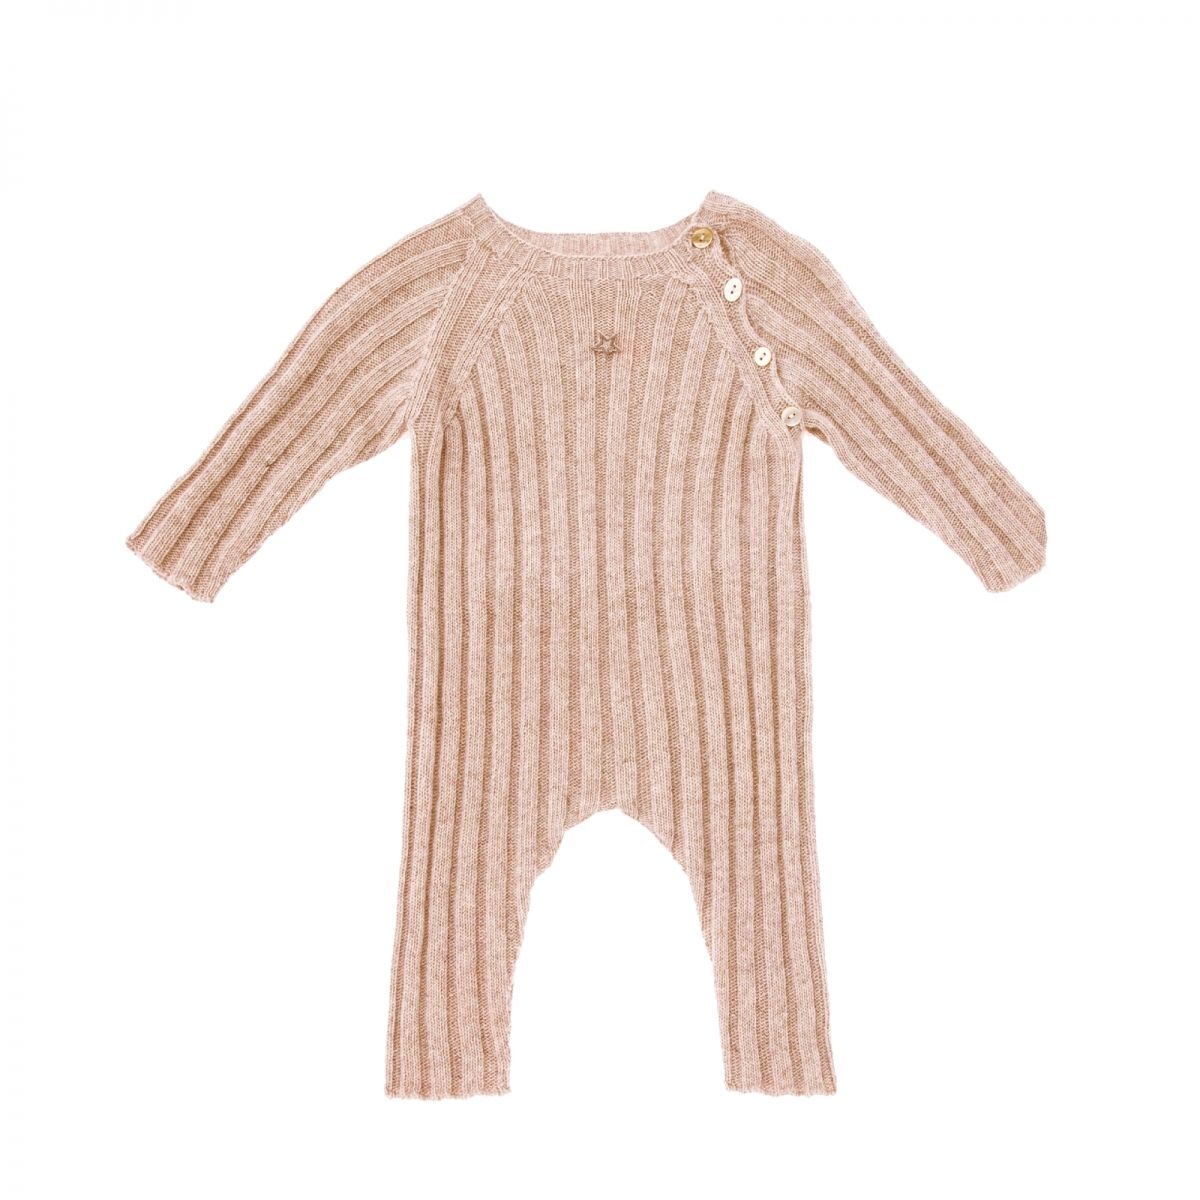 Tocoto Vintage Kombinezon knitted ribbed różowy